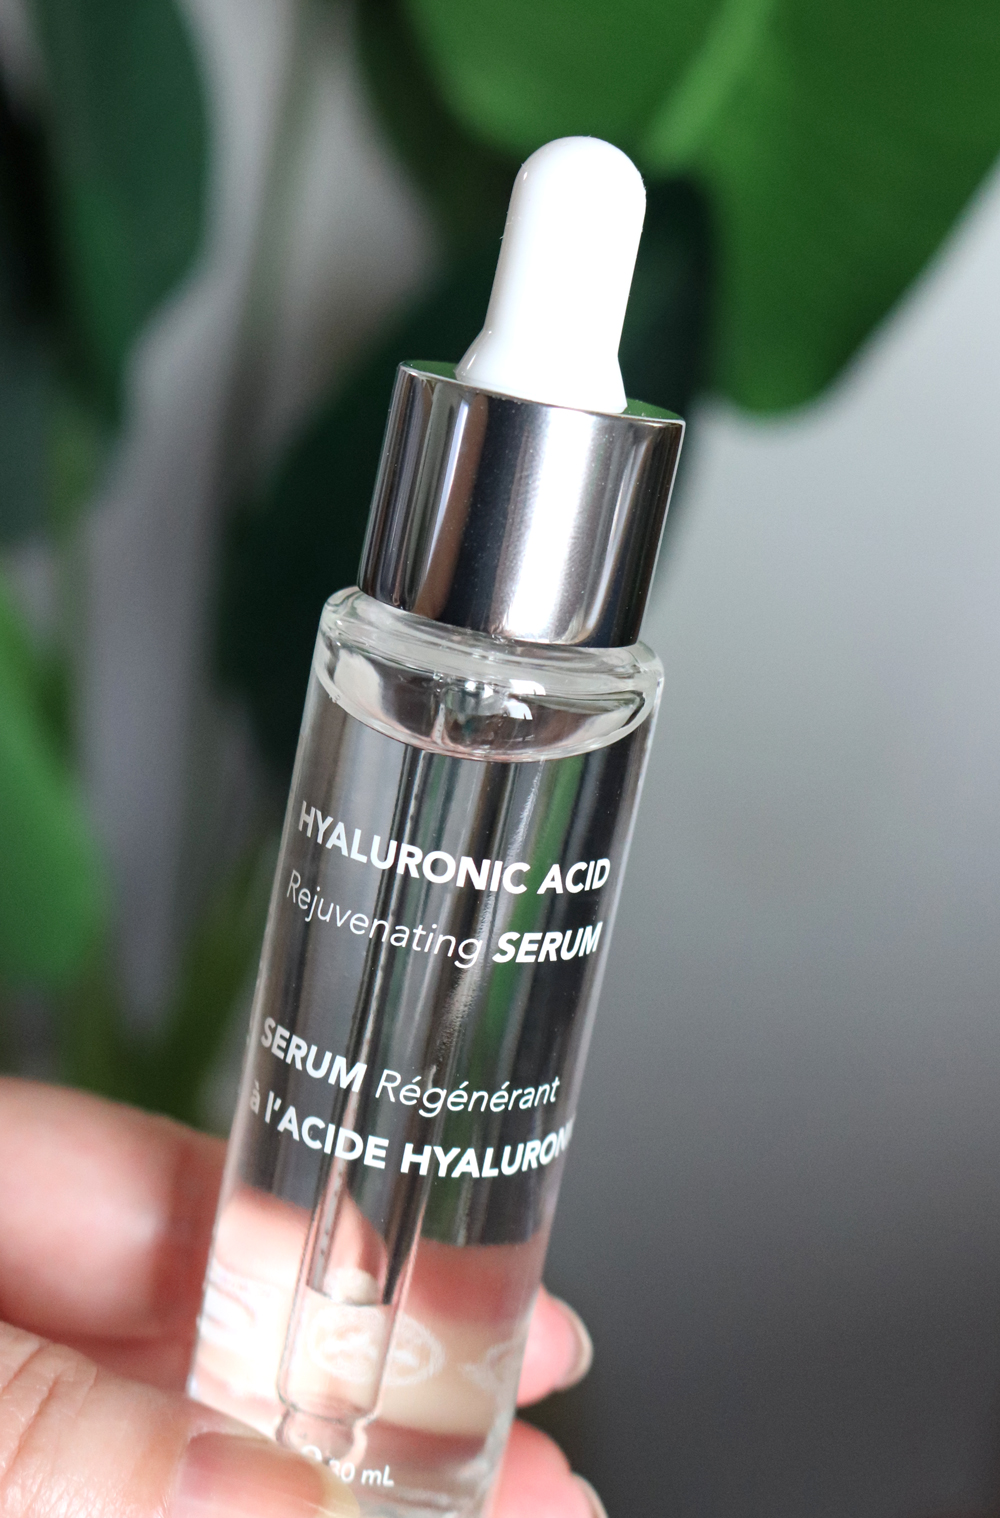 Studio Makeup Cruelty Free Hyaluronic Acid Rejuvenating Serum Review and Giveaway